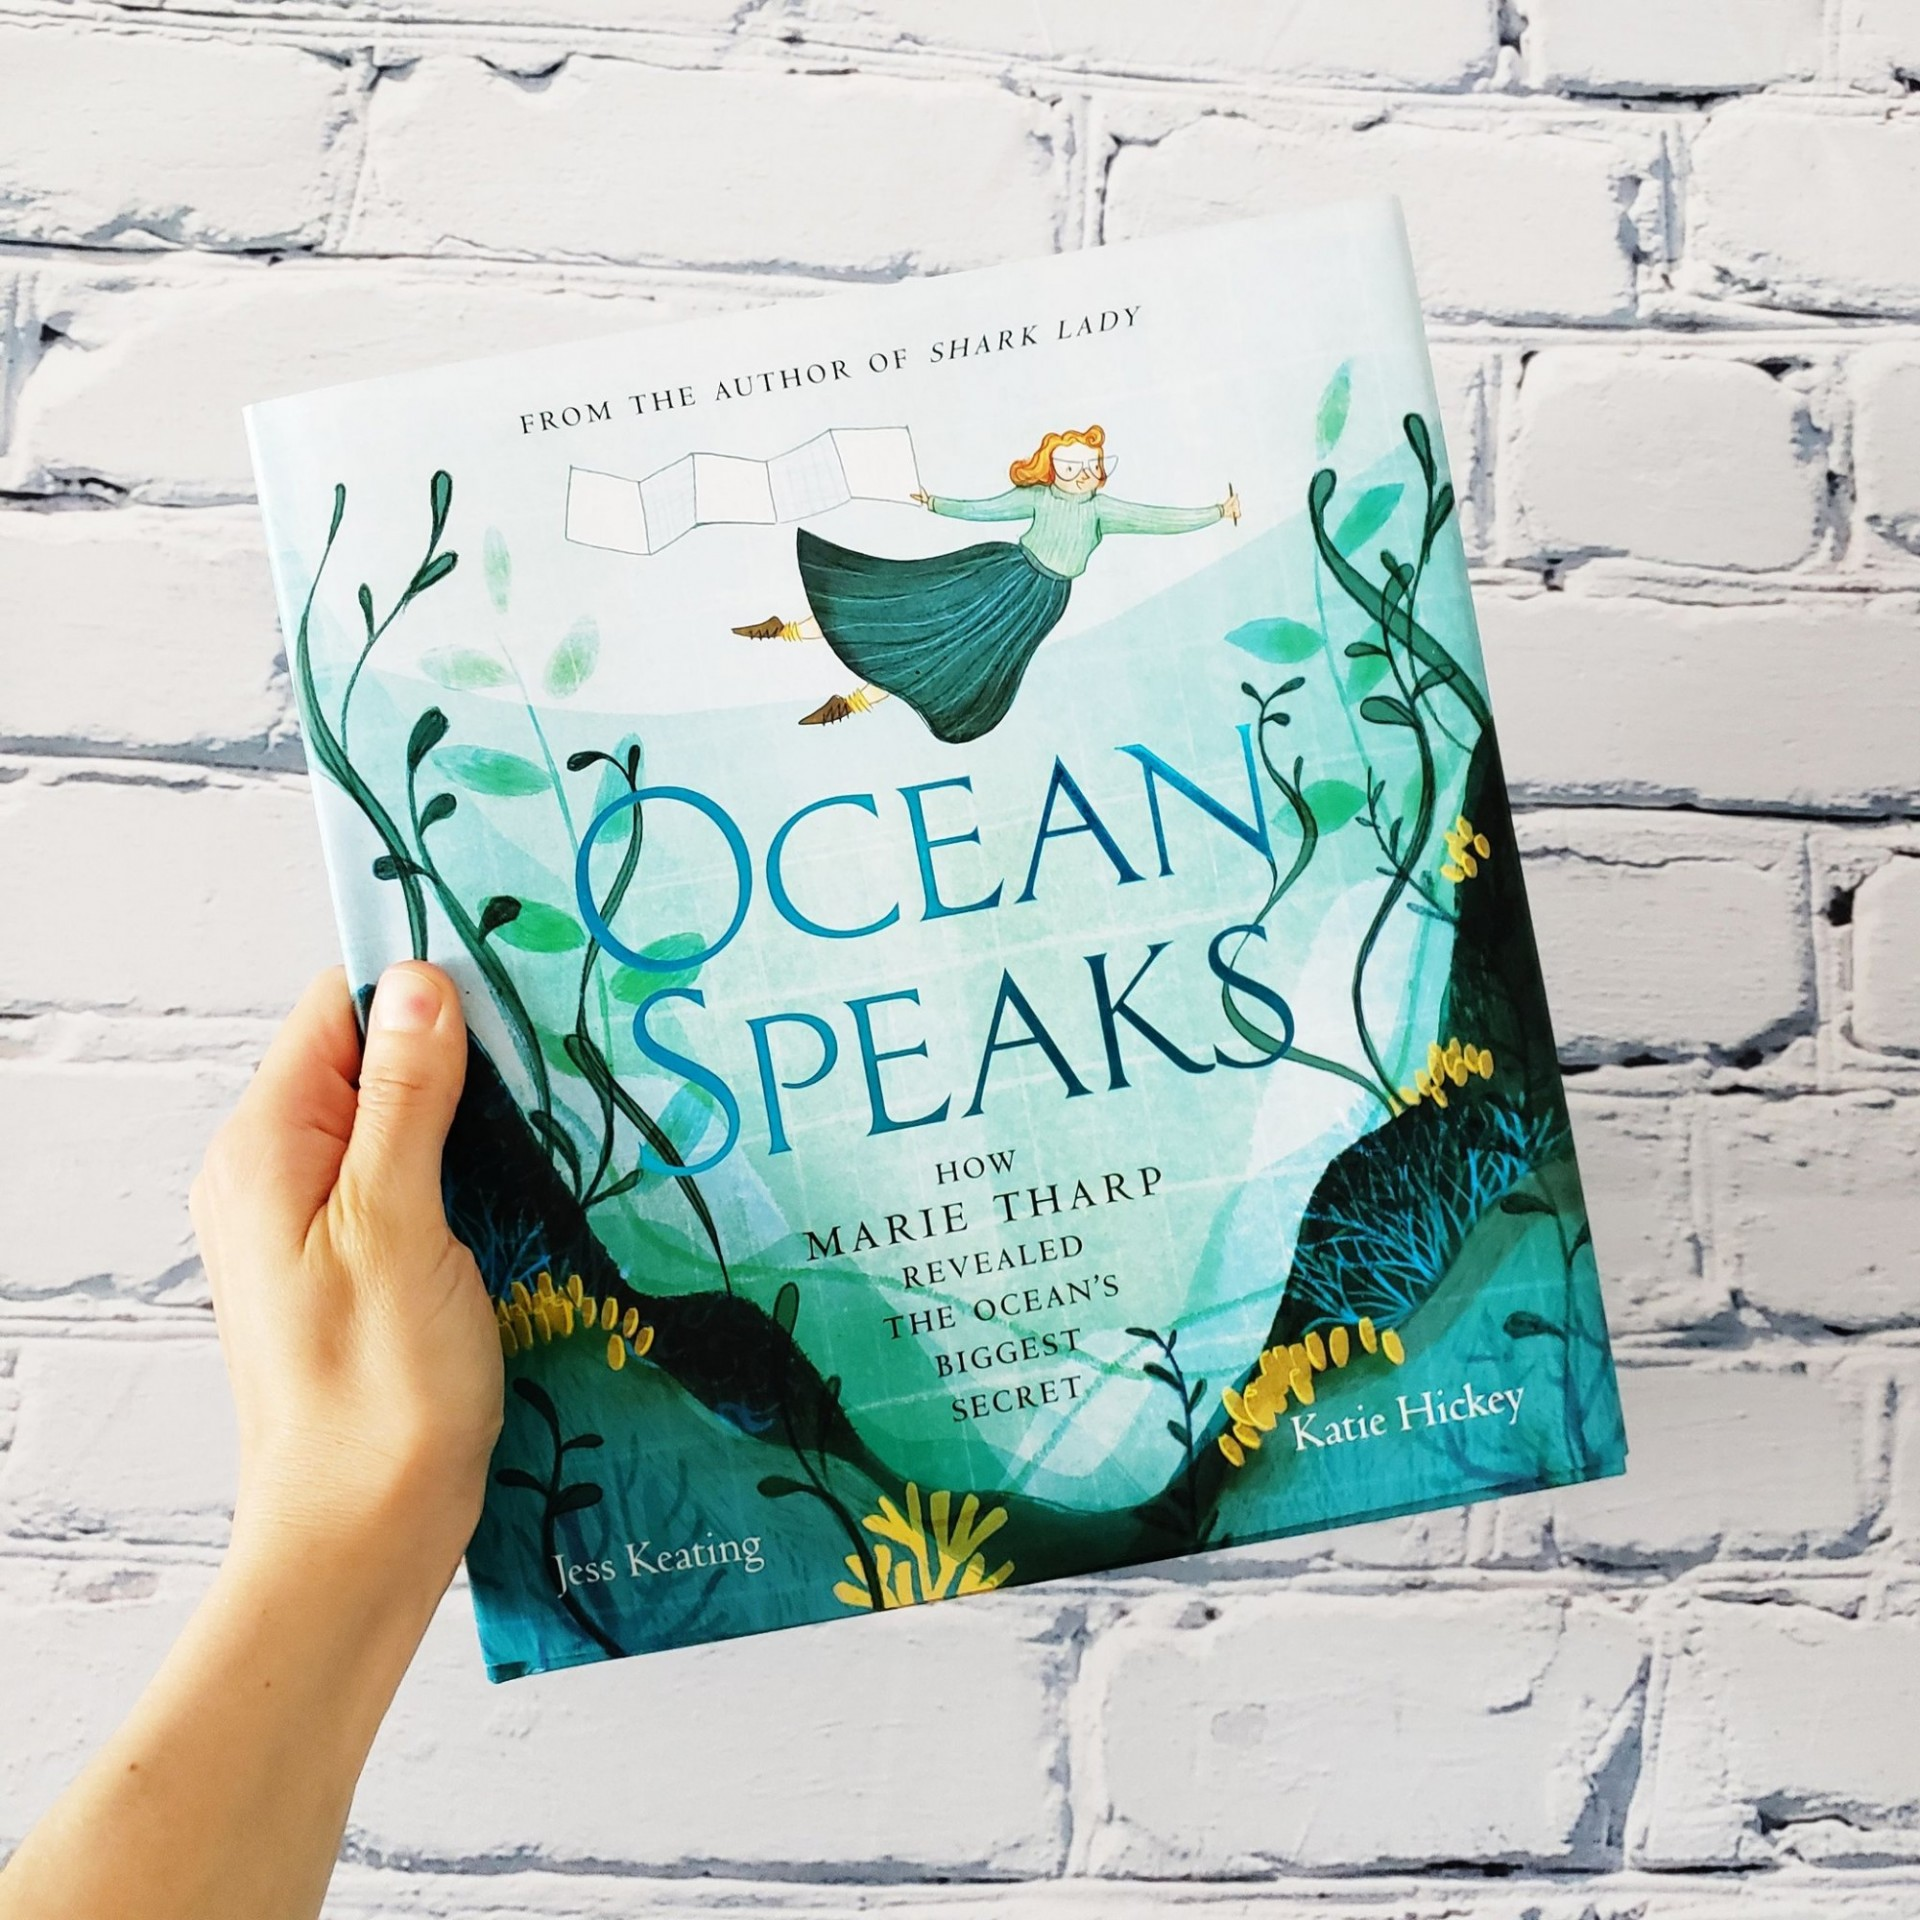 Ocean Speaks: How Marie Tharp Revealed the Ocean's Biggest Secret by Jess Keating